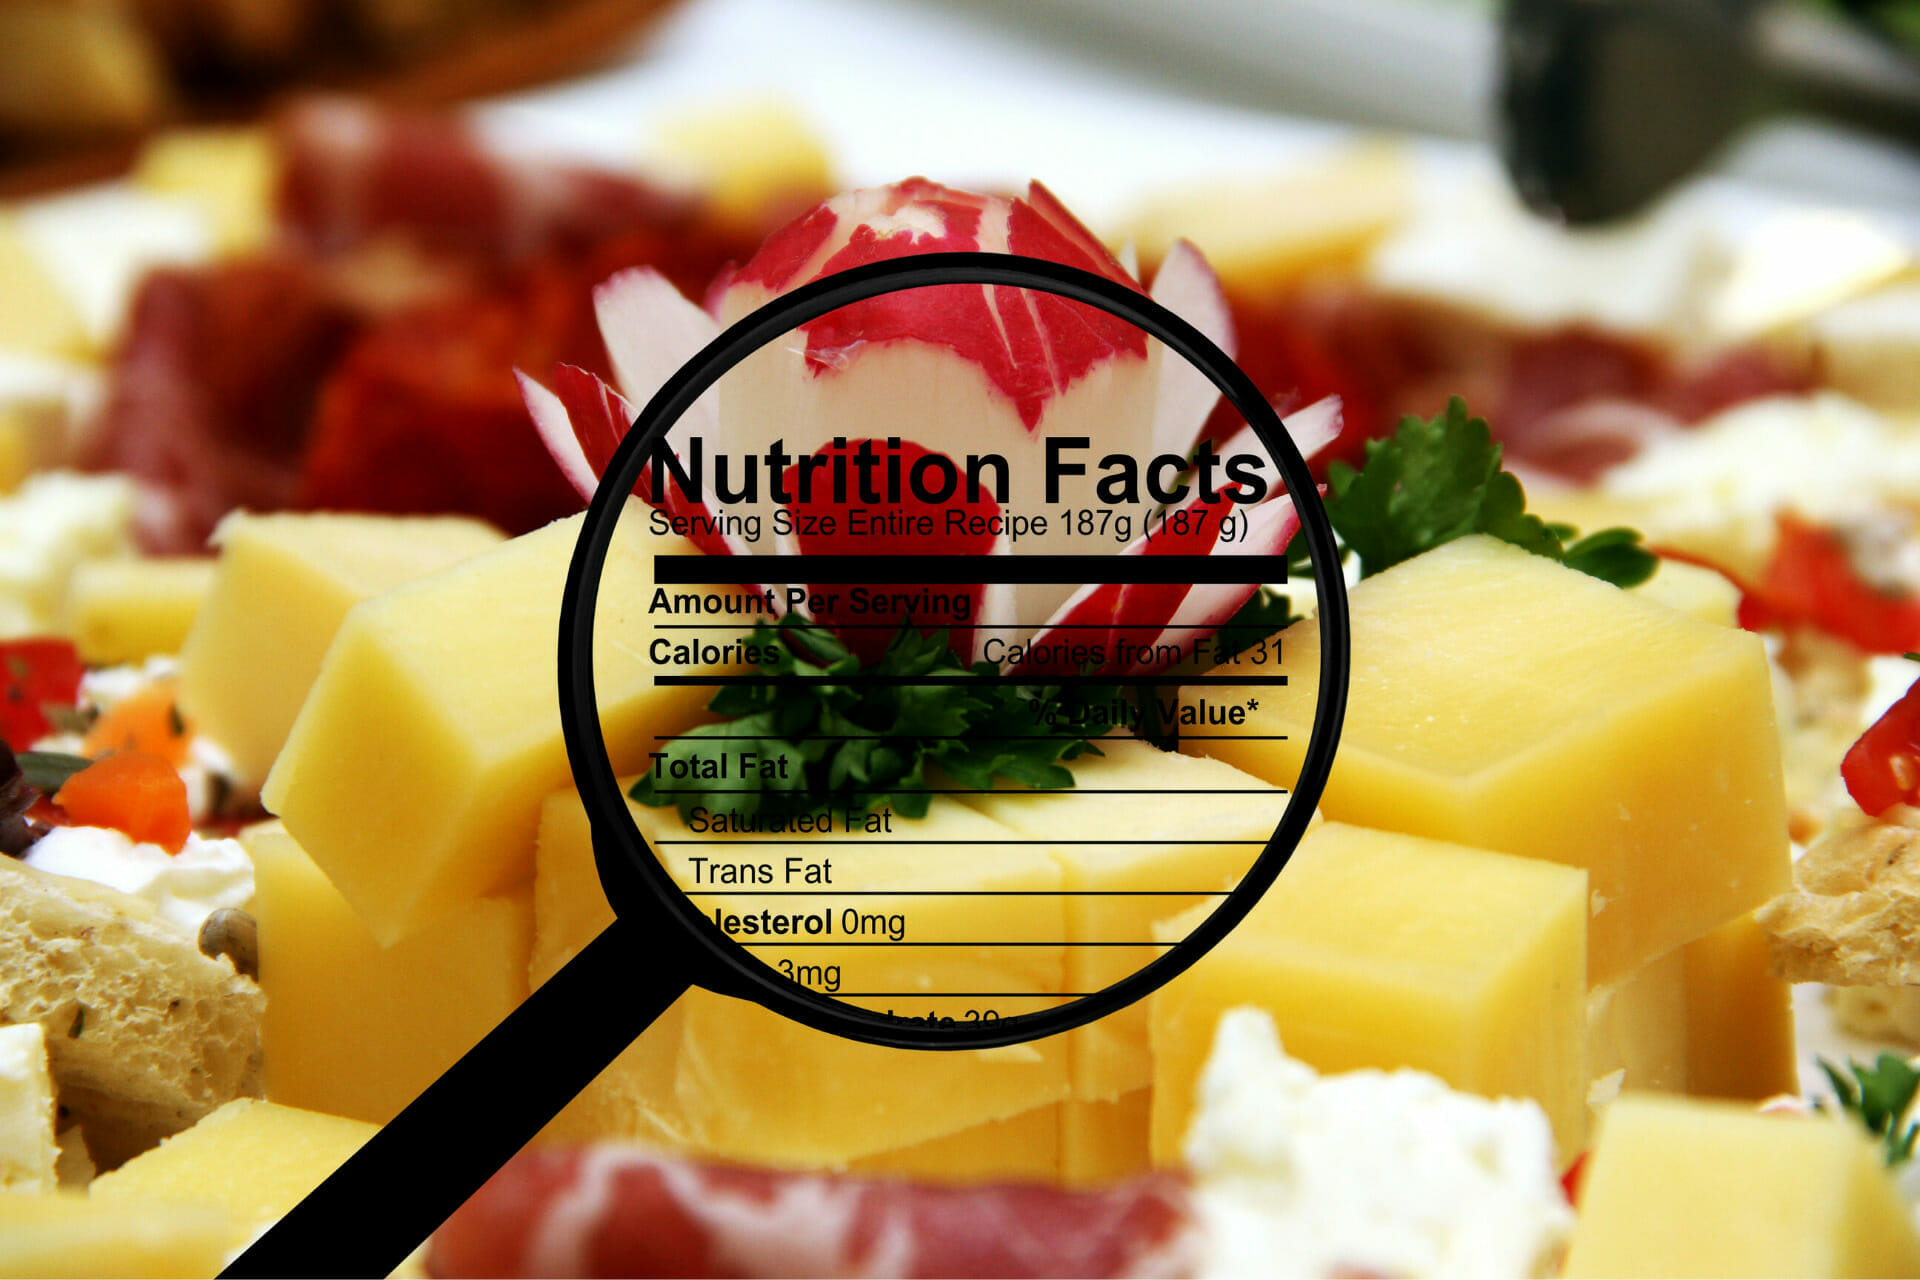 Cheese Nutritional Facts